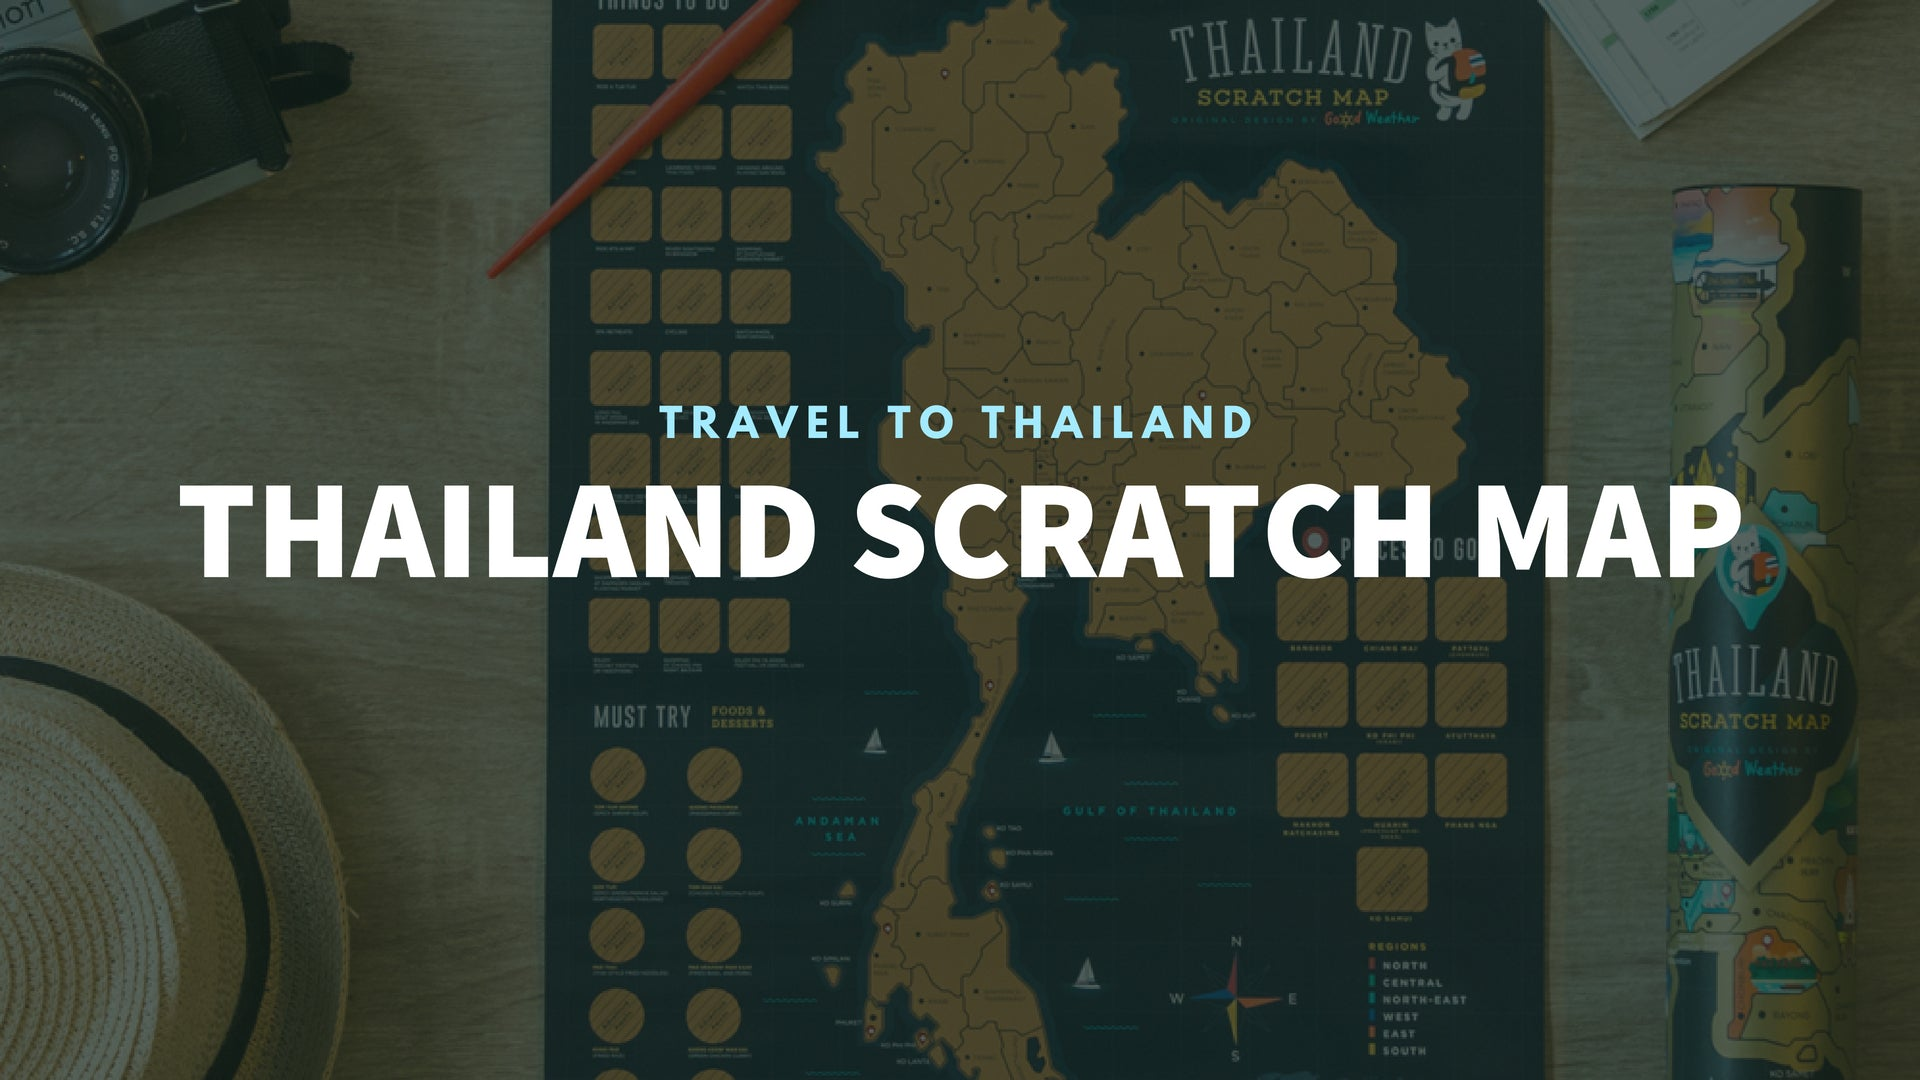 Good Weather Thailand Scratch Travel Map Travel to Thailand deluxe luckies world travel map with pins europe uk rosegold small personalised Scratch Off Traveling Thailand travelization 泰國 刮刮地圖 刮刮樂 世界地圖 banner - GadgetiCloud